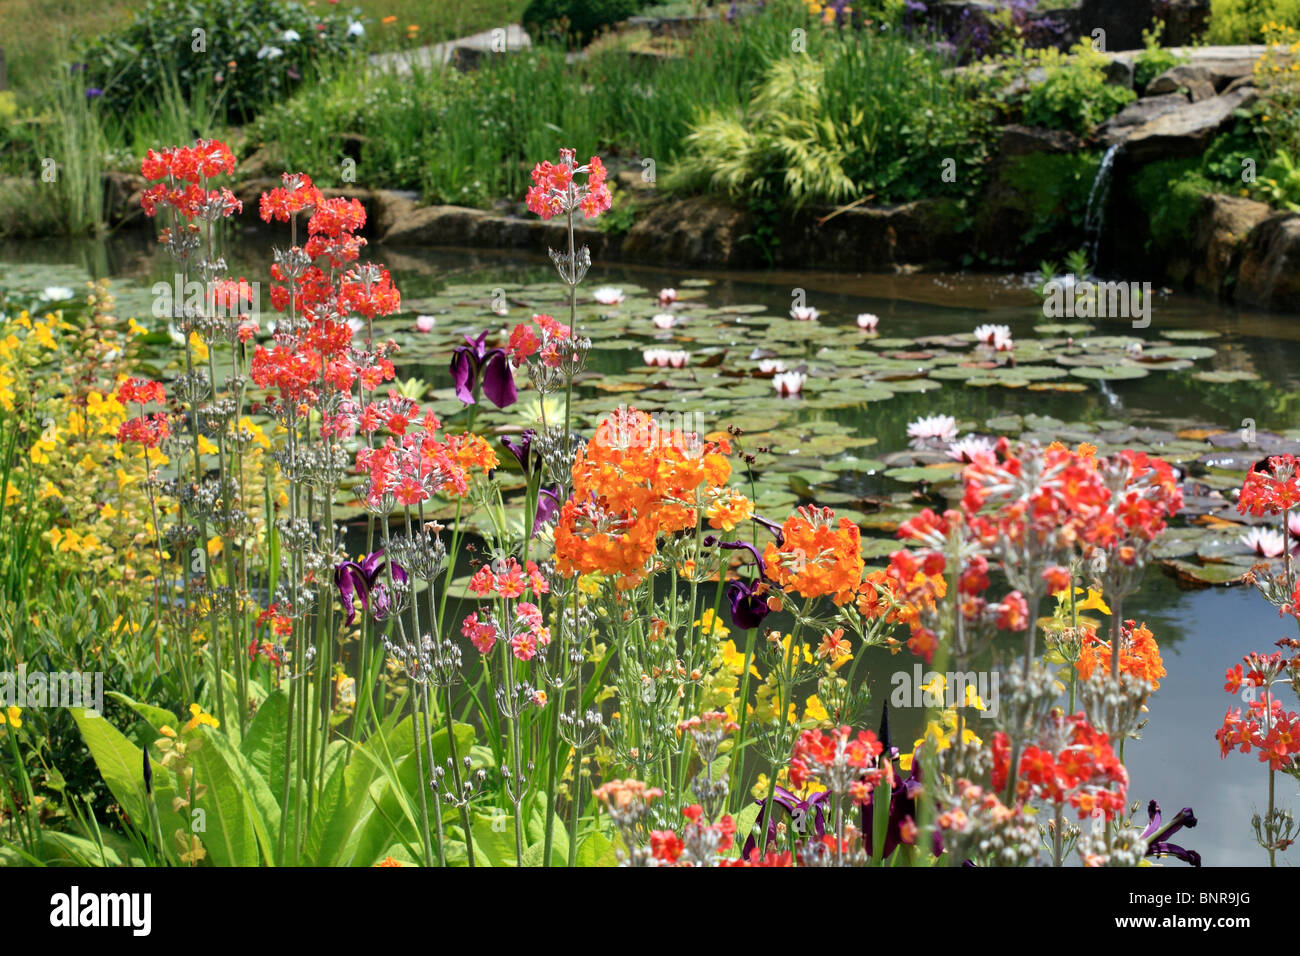 Pretty Garden Scene With Flowers And A Pond Surrey England Uk Stock